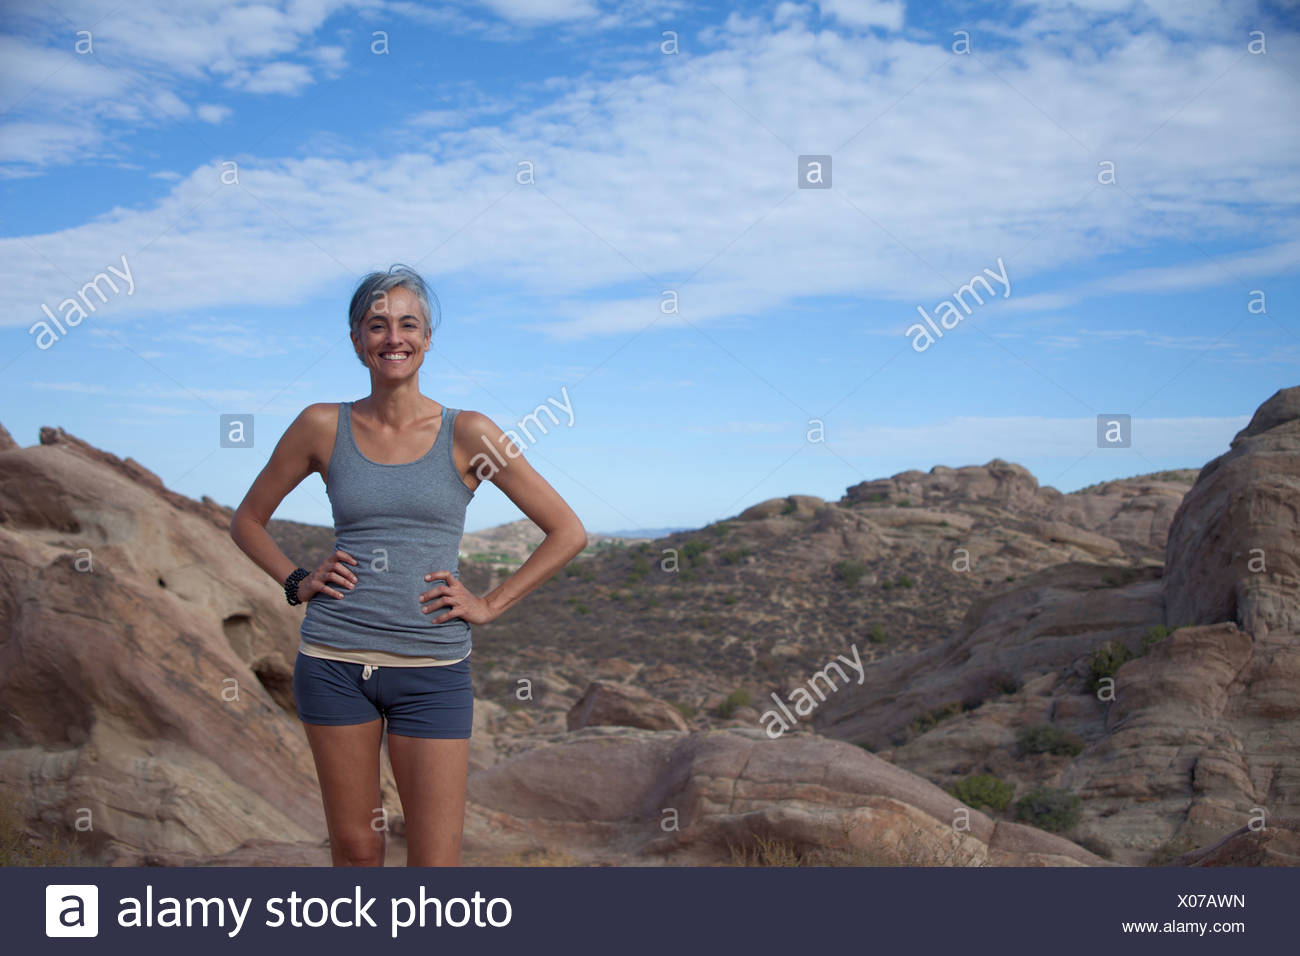 Woman standing at Vazquez Rocks with hands on hips - Stock Image